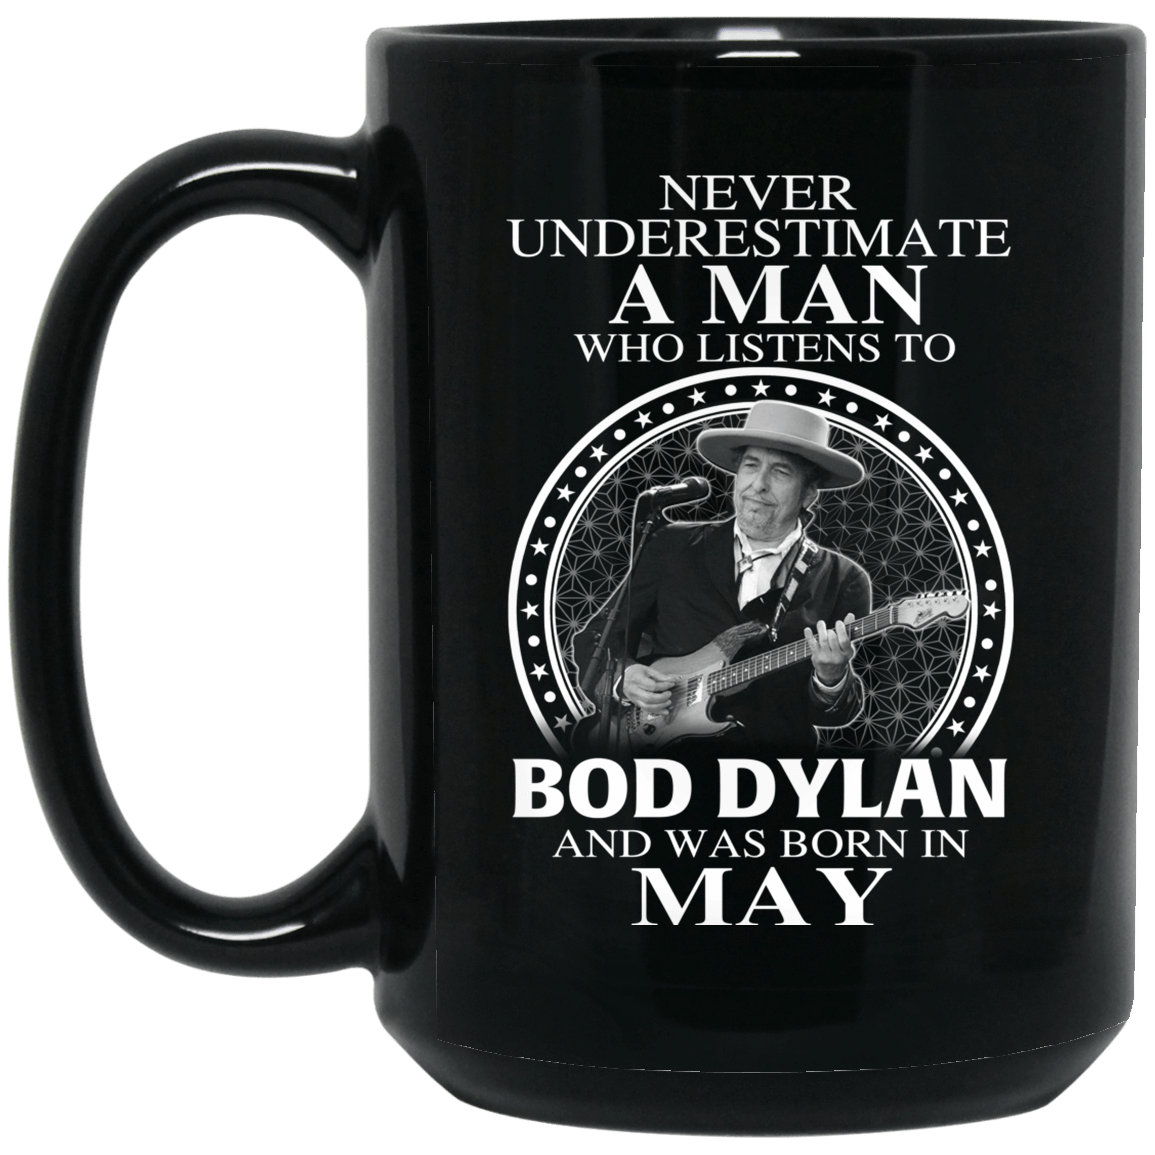 A Man Who Listens To Bob Dylan And Was Born In May Mug 1066-10182-76153600-49311 - Tee Ript